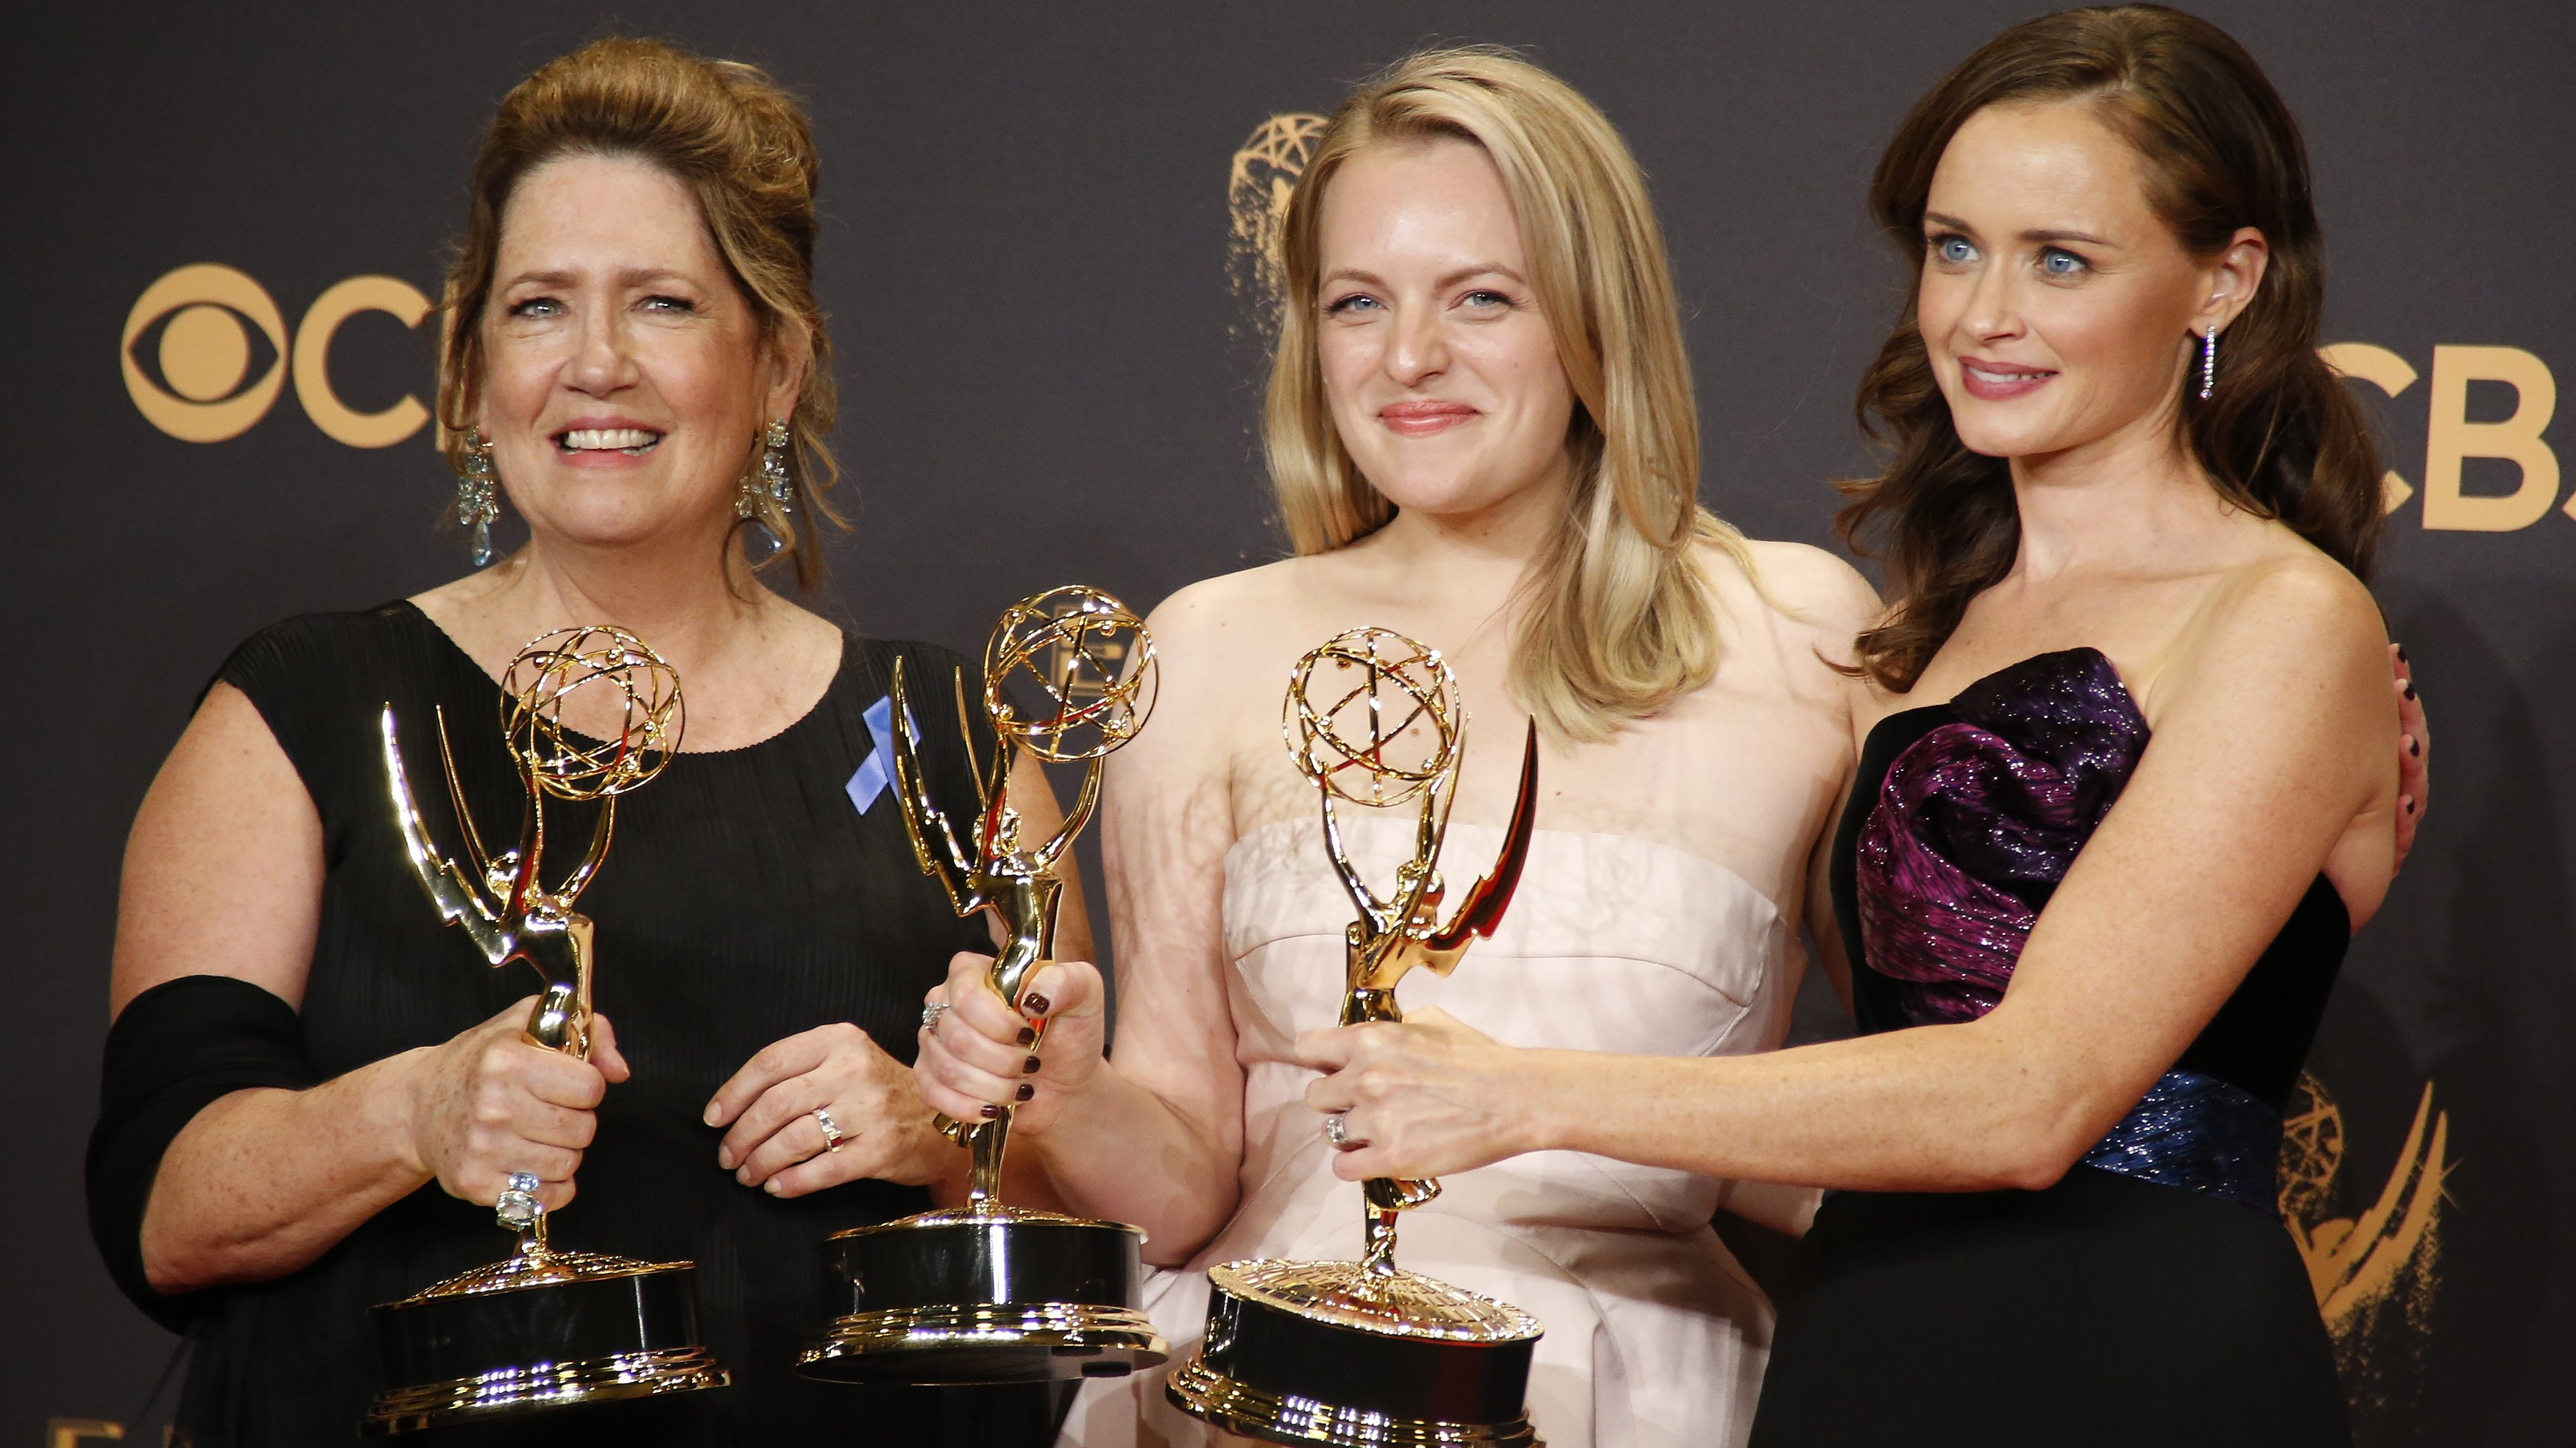 69th Primetime Emmy Awards – Photo Room – Los Angeles, California, U.S., 17/09/2017 - Ann Dowd (L) poses with the Emmy for Outstanding Supporting Actress in a Drama Series, Elisabeth Moss with the Emmy for Outstanding Lead Actress in a Drama Series and Alexis Bledel with the Emmy for Outstanding Guest Actress in a Drama, all awards for the The Handmaid's Tale. REUTERS/Lucy Nicholson - HP1ED9I0BLCJ8